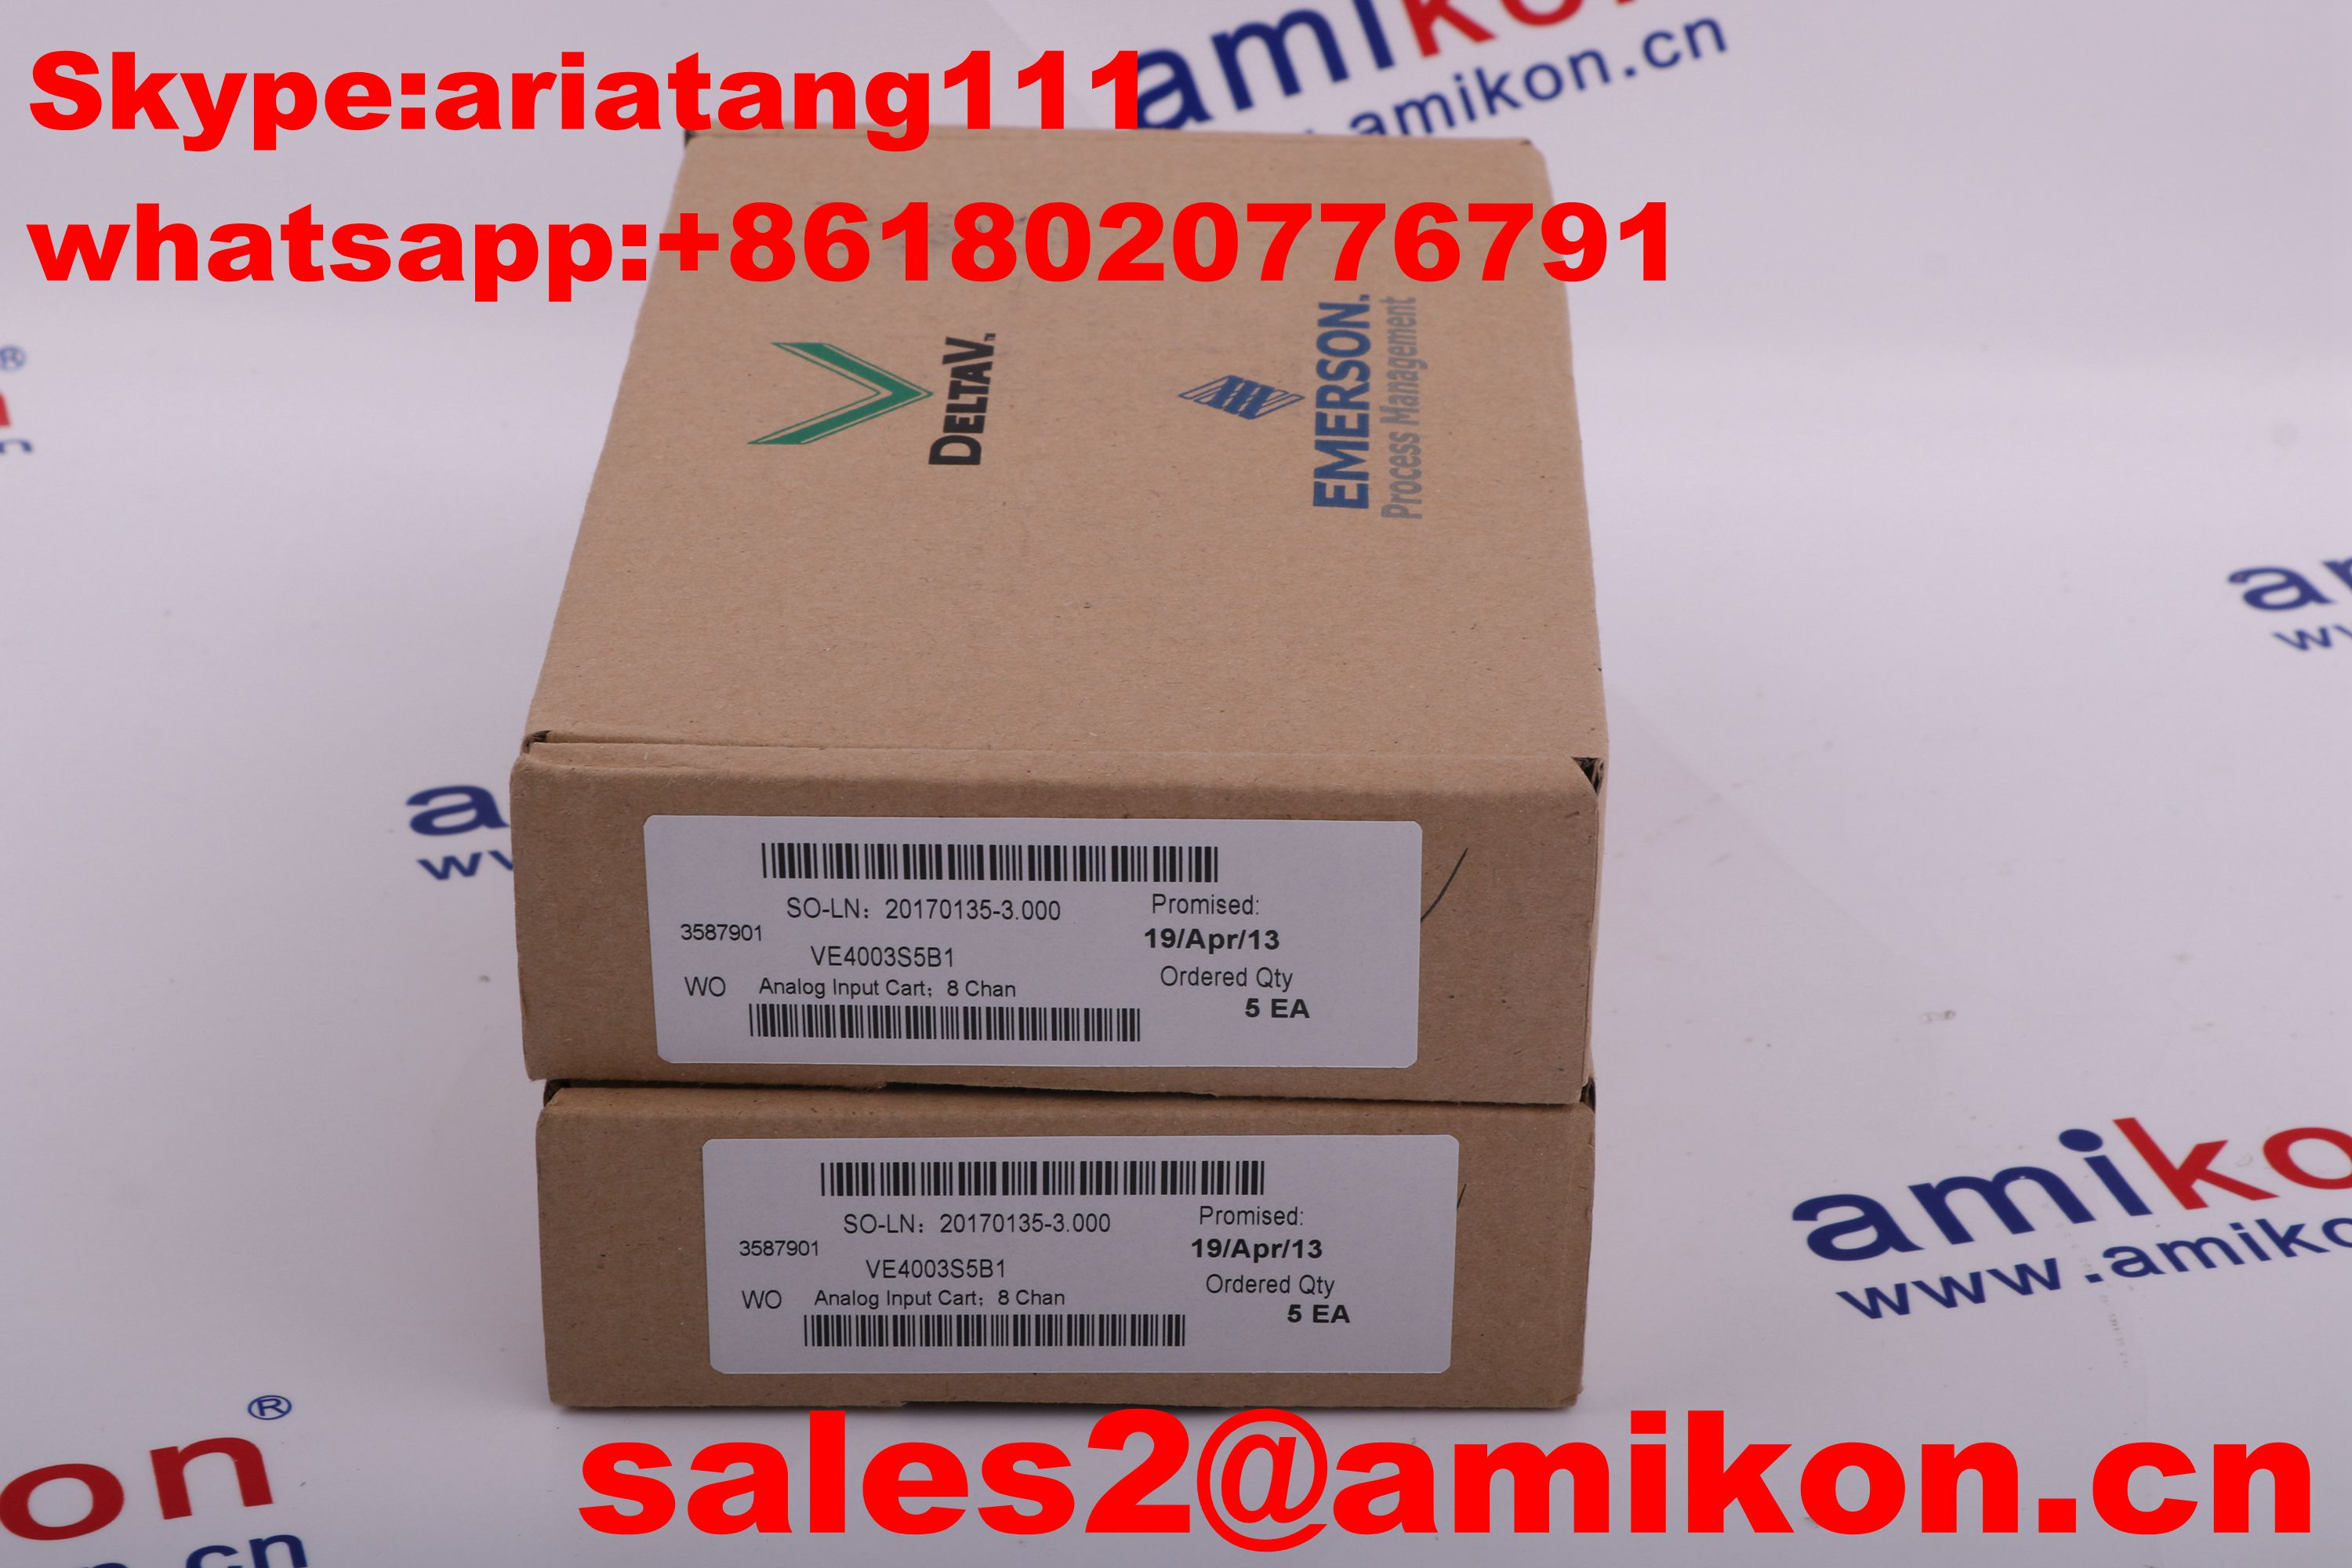 GE DS3820PSFF1A1A  PLC DCS System Distributor sales2@amikon.cn